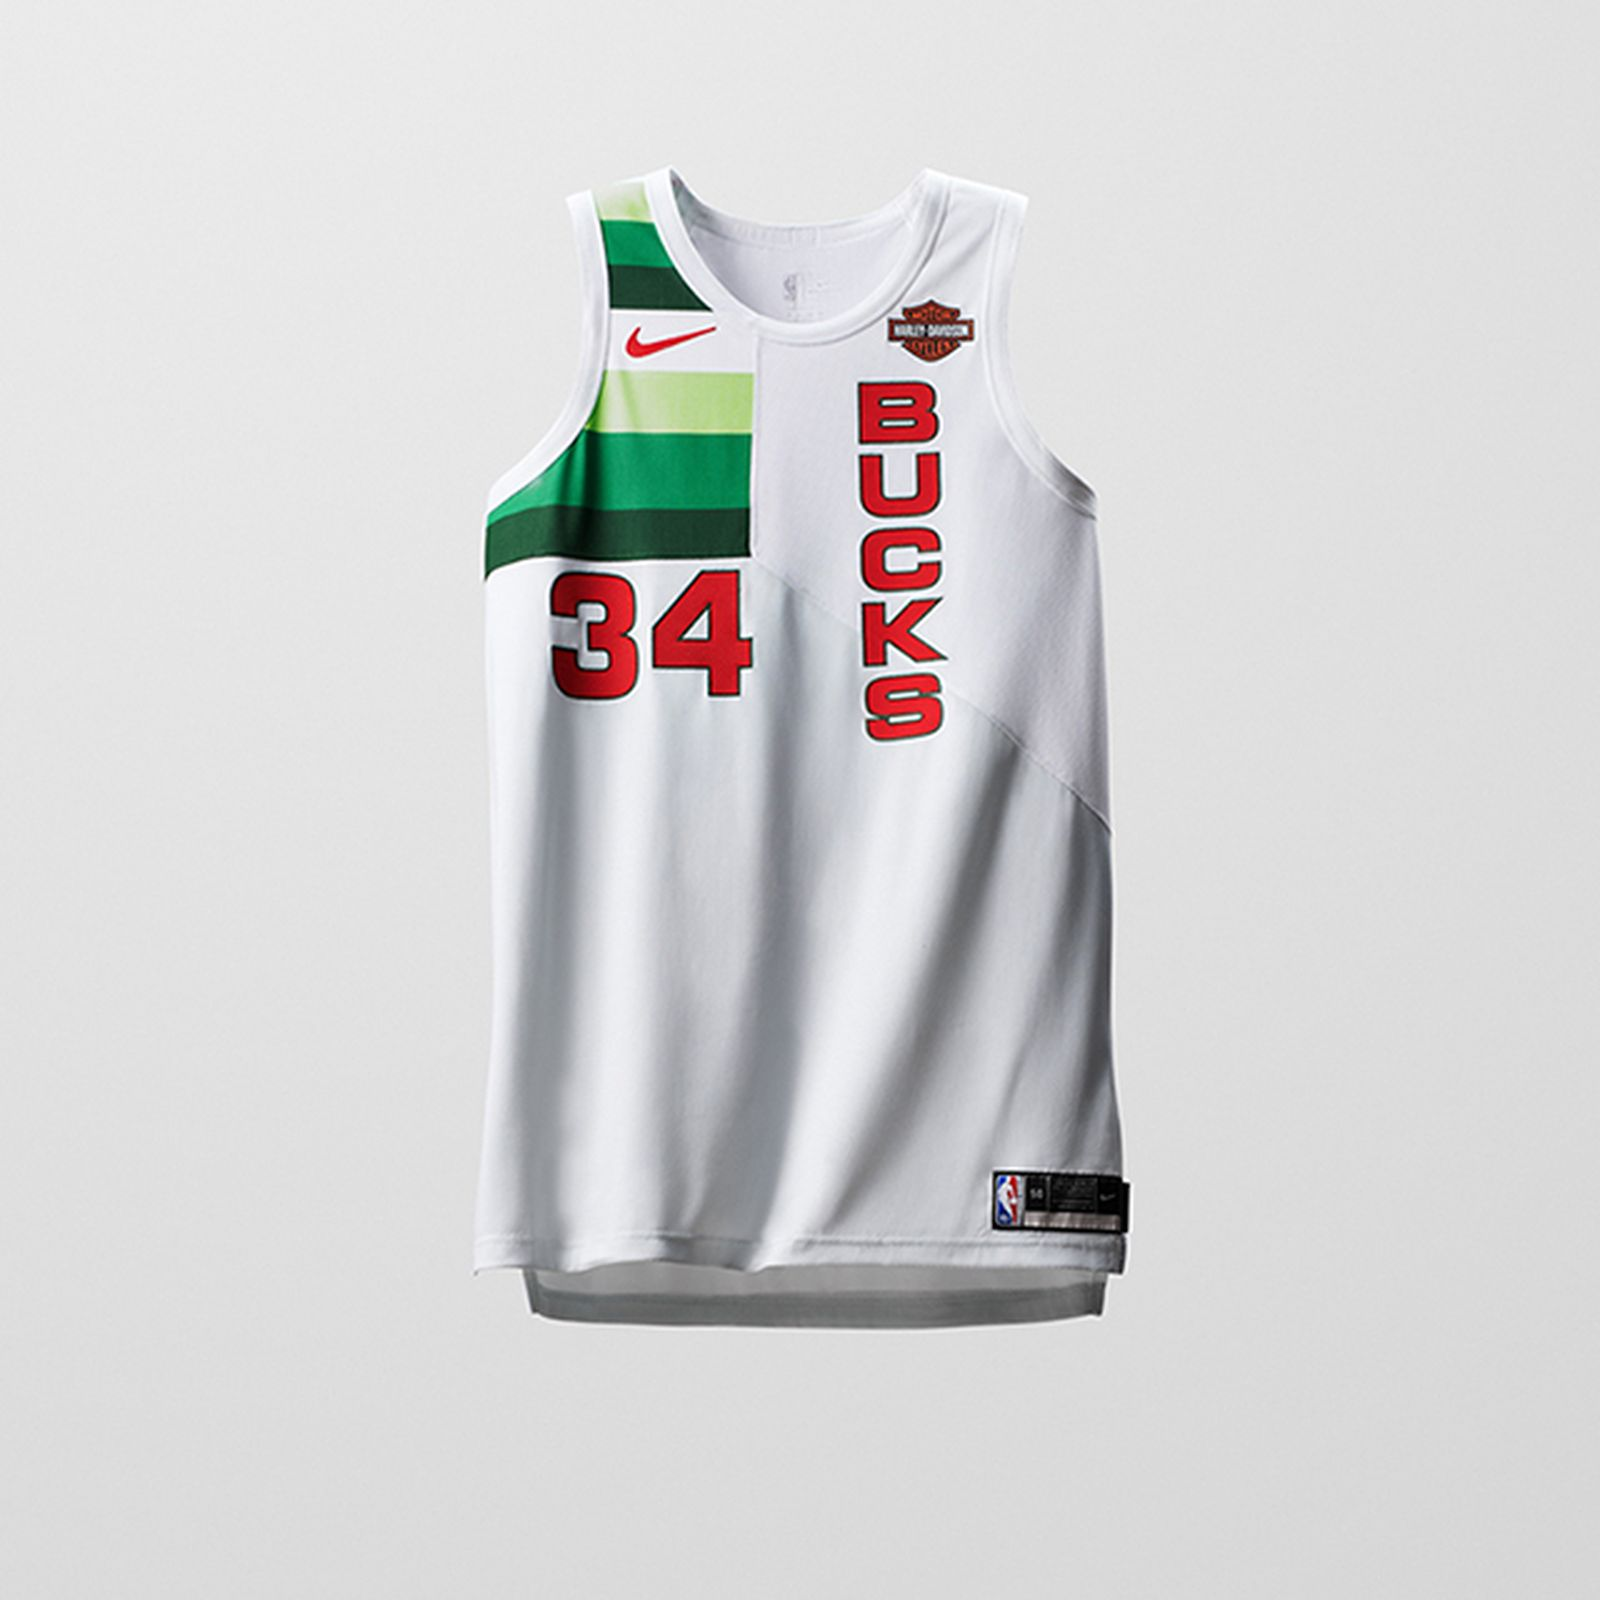 microondas Adular Hacer bien  Nike NBA Earned Edition Uniforms: Shop it Here